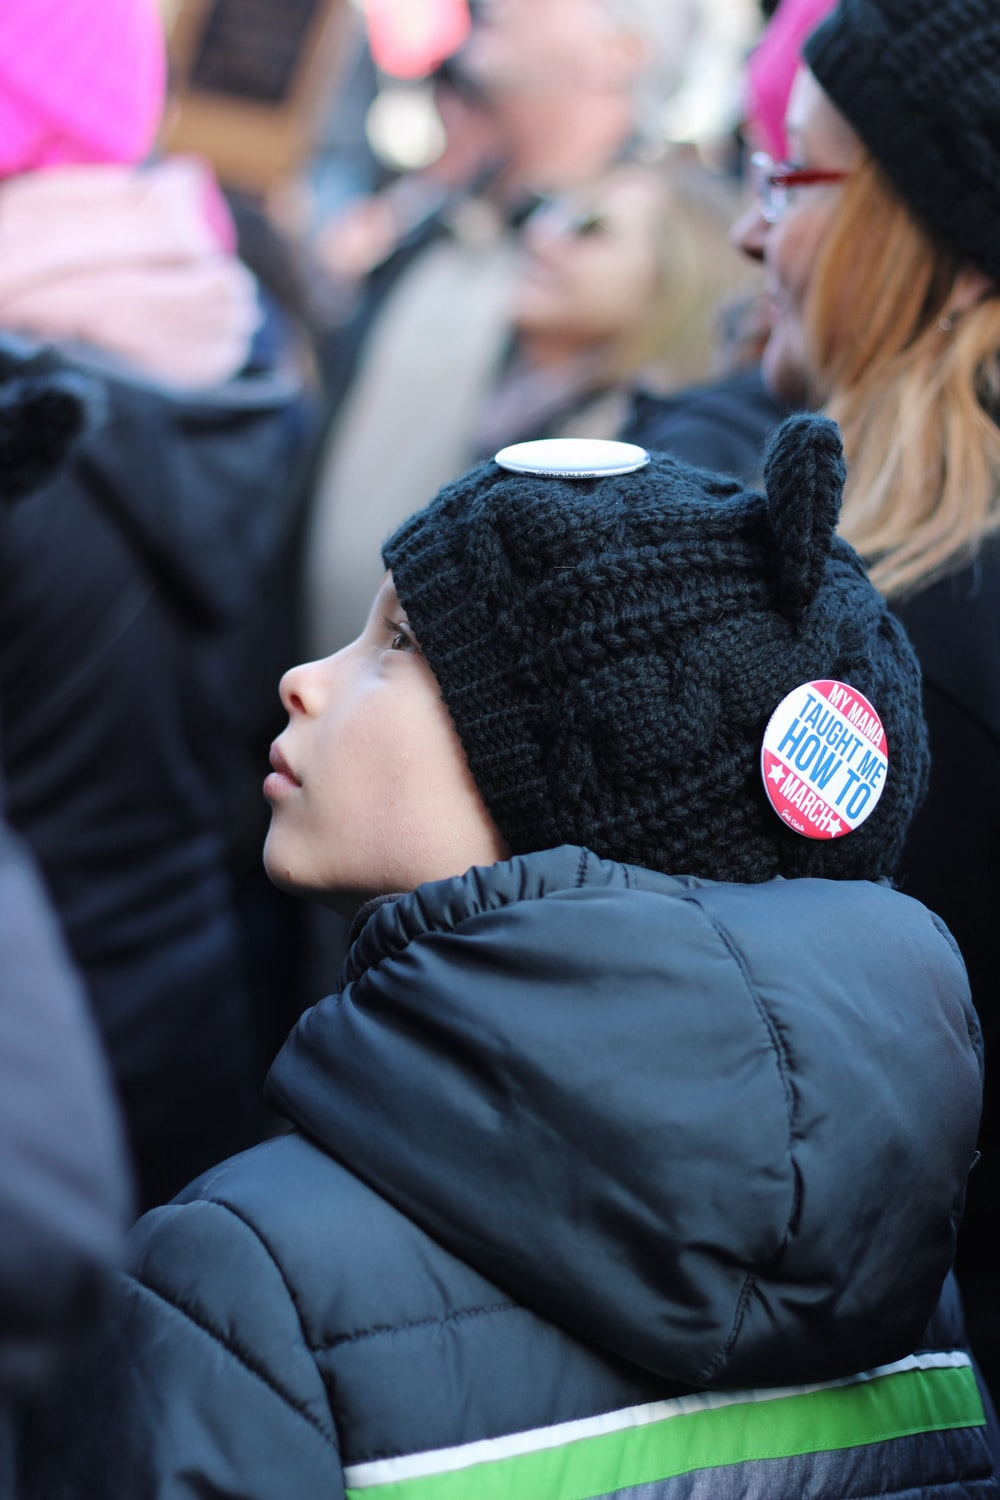 close up photo of boy's back sitting looking to the left wearing knit cap and hooded jacket